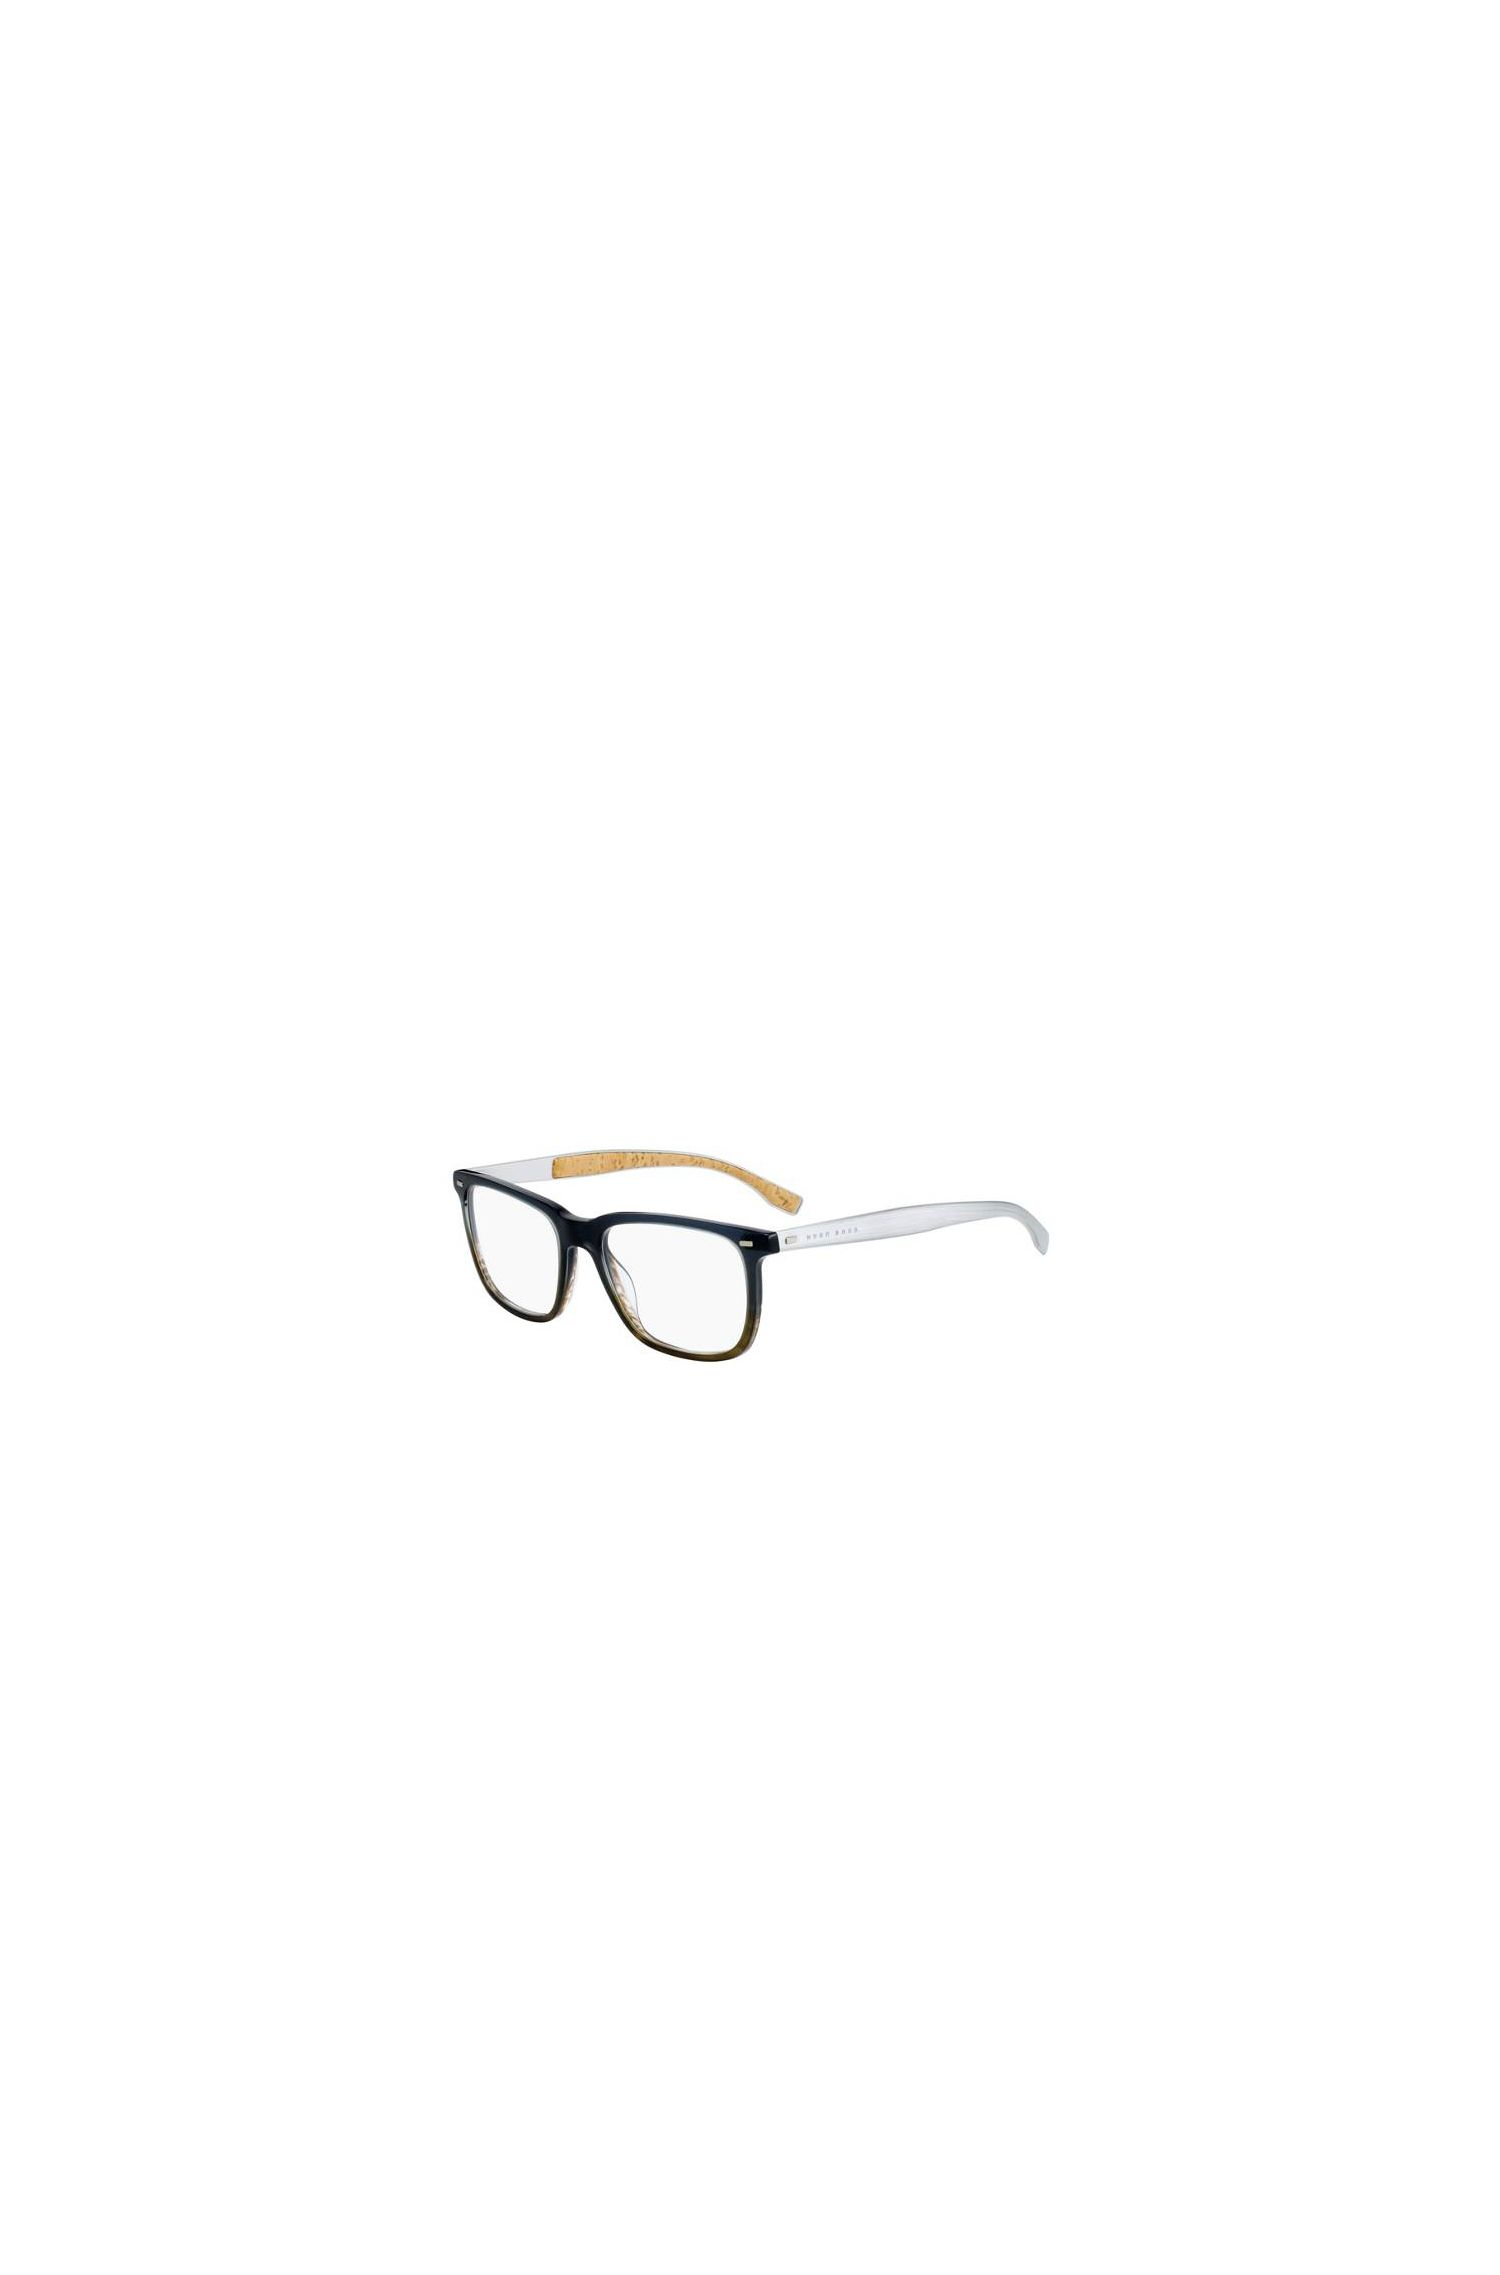 Acetate, Metal Rectangular Optical Frames | BOSS 0884 0R7